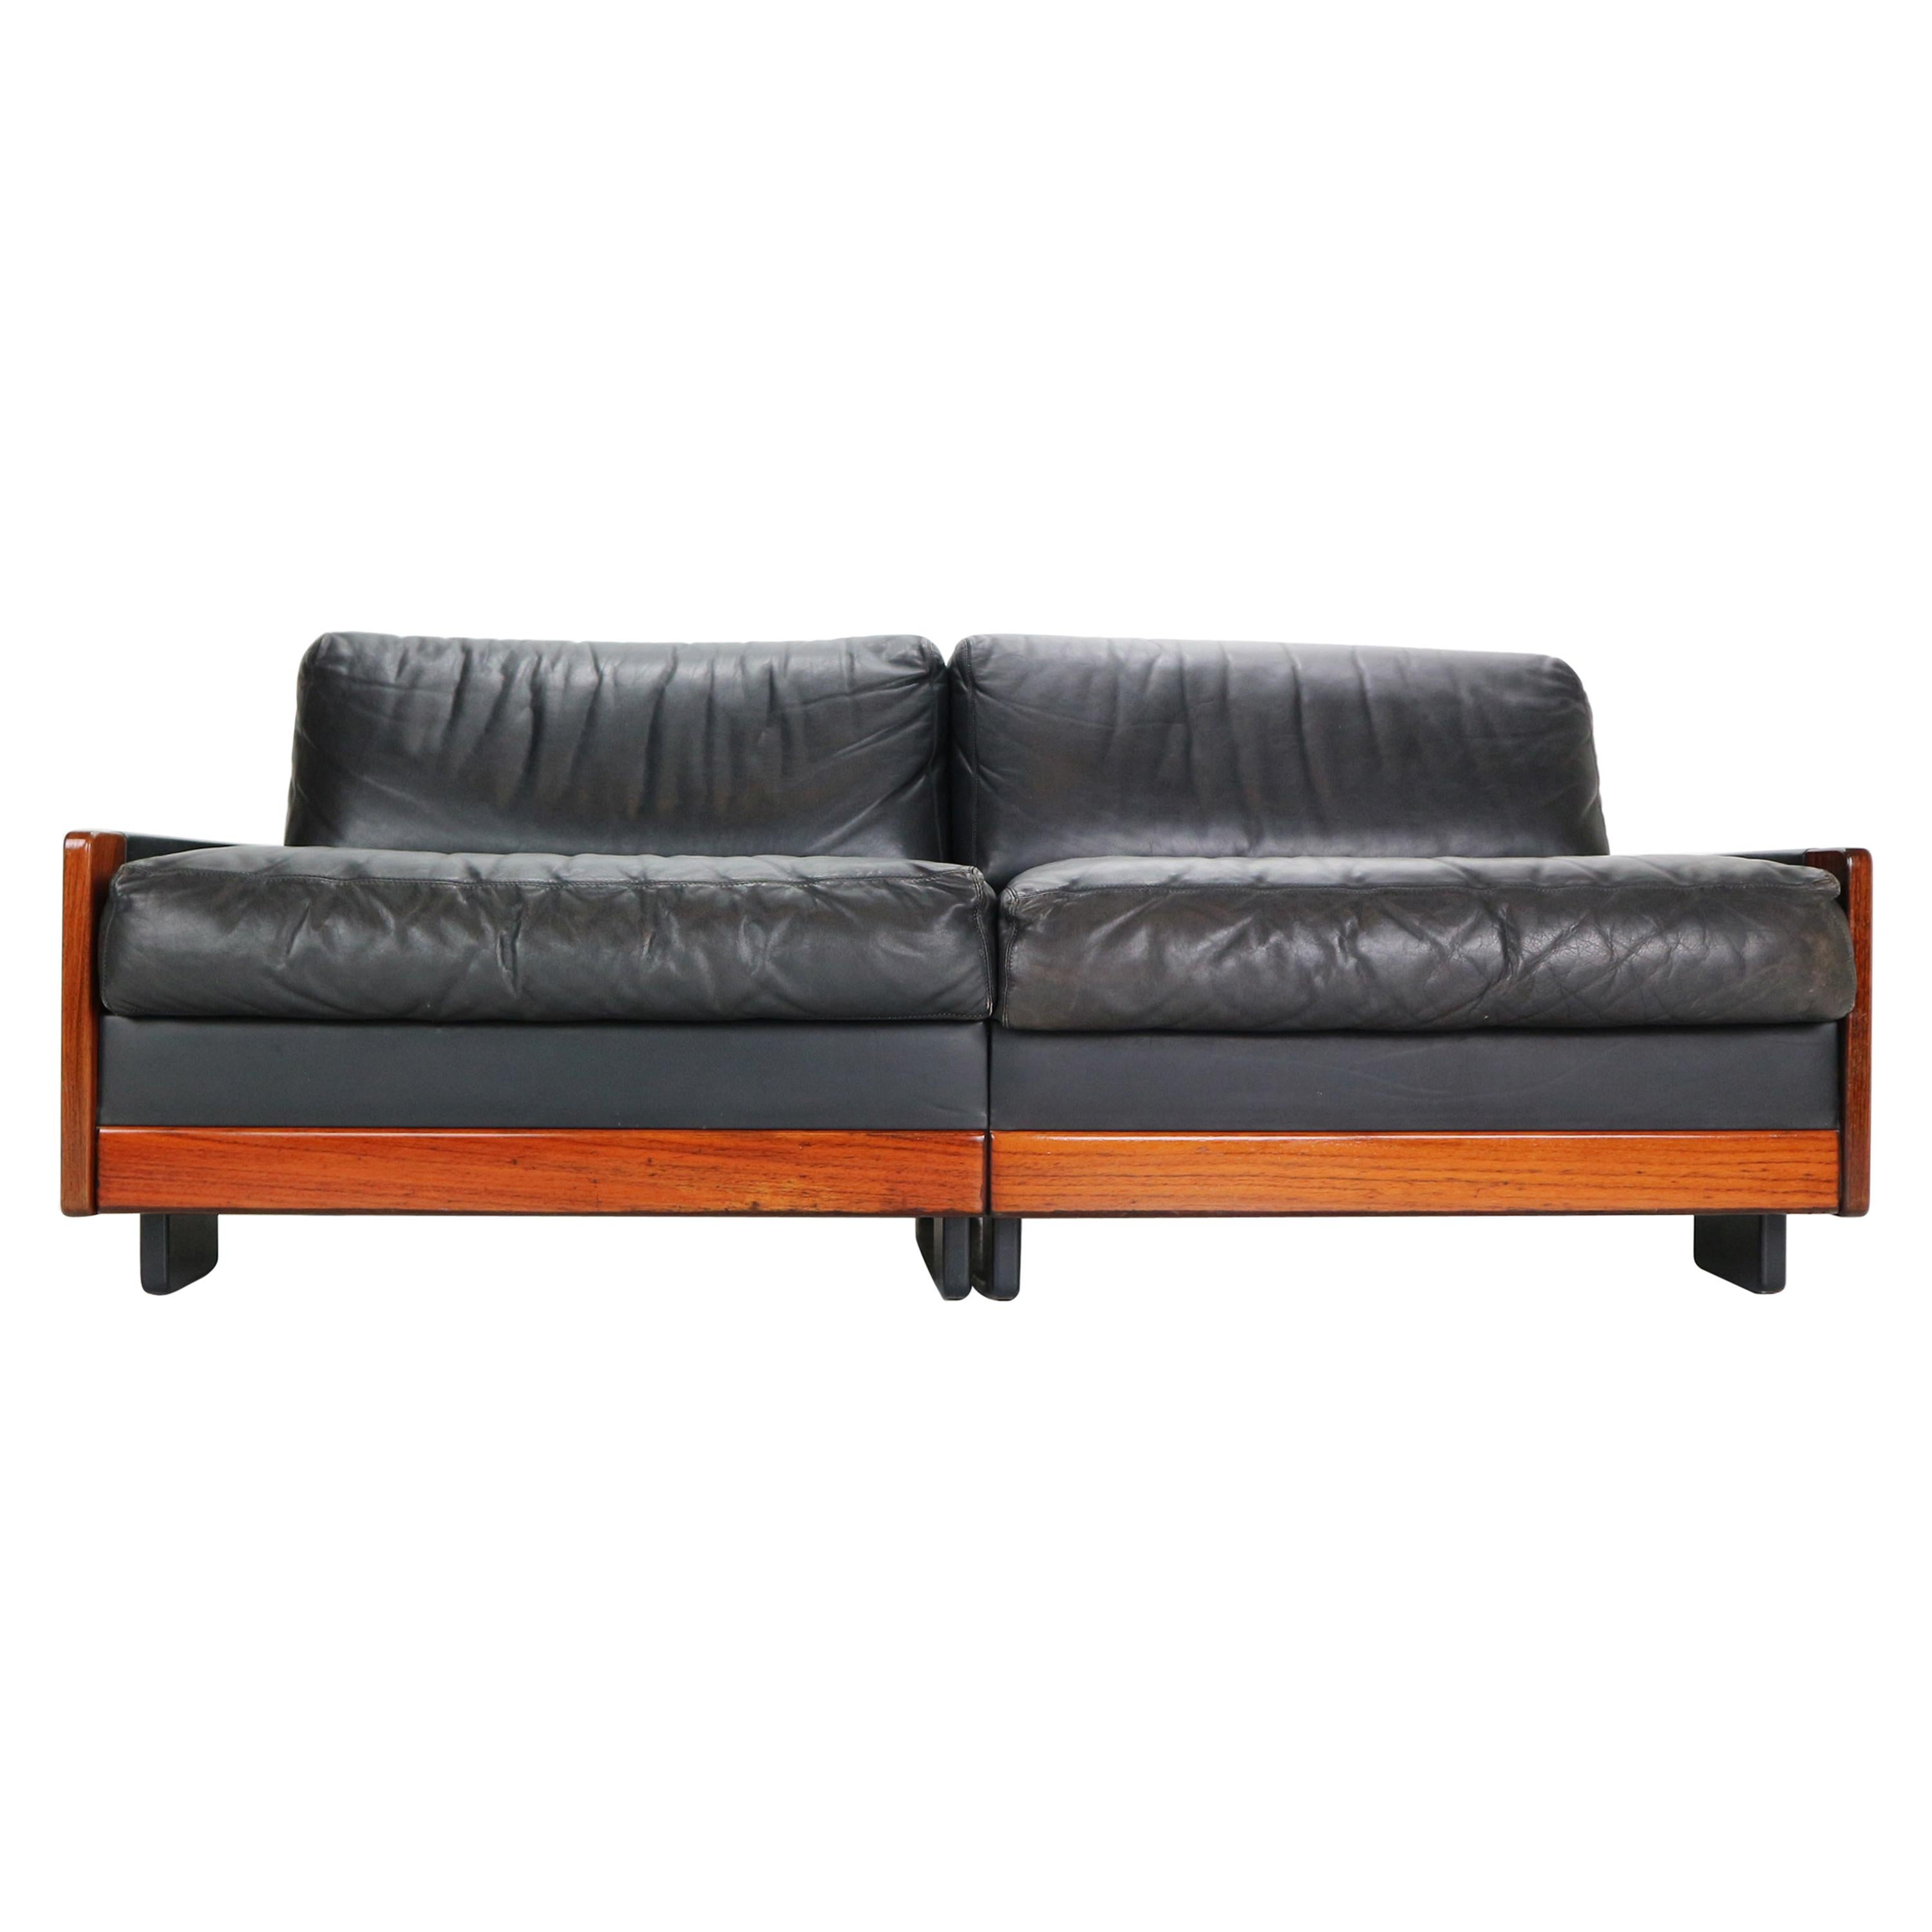 Afra & Tobia Scarpa Black Leather 2-Seat Sofa for Cassina Model-920, 1960s